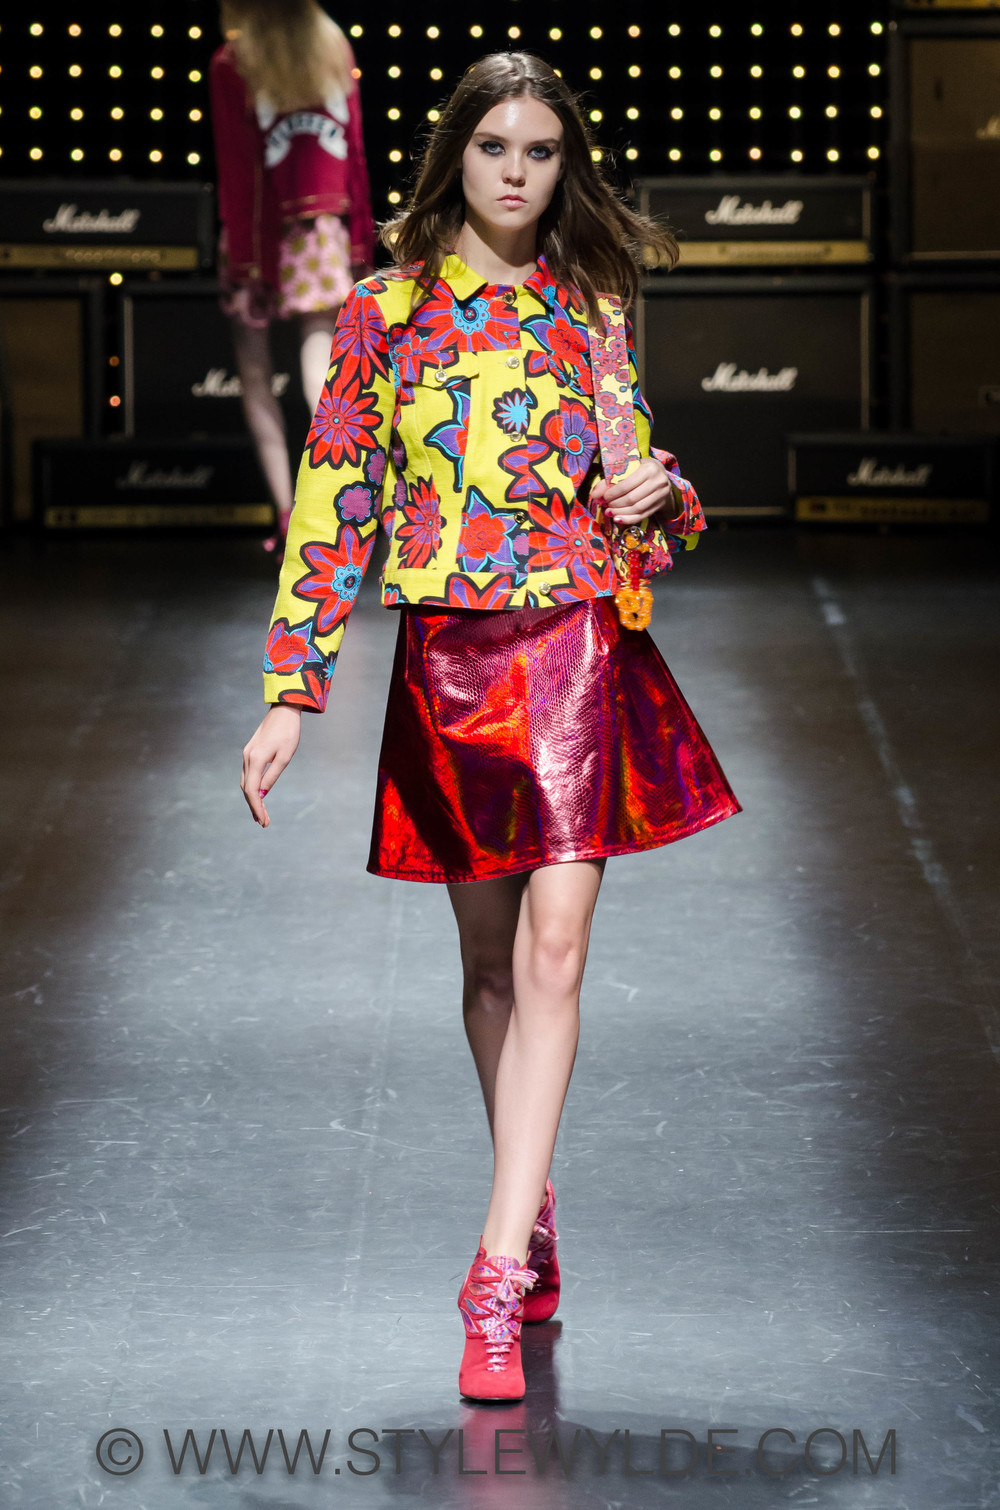 stylewylde_HouseofHolland_SS15 (15 of 68).jpg